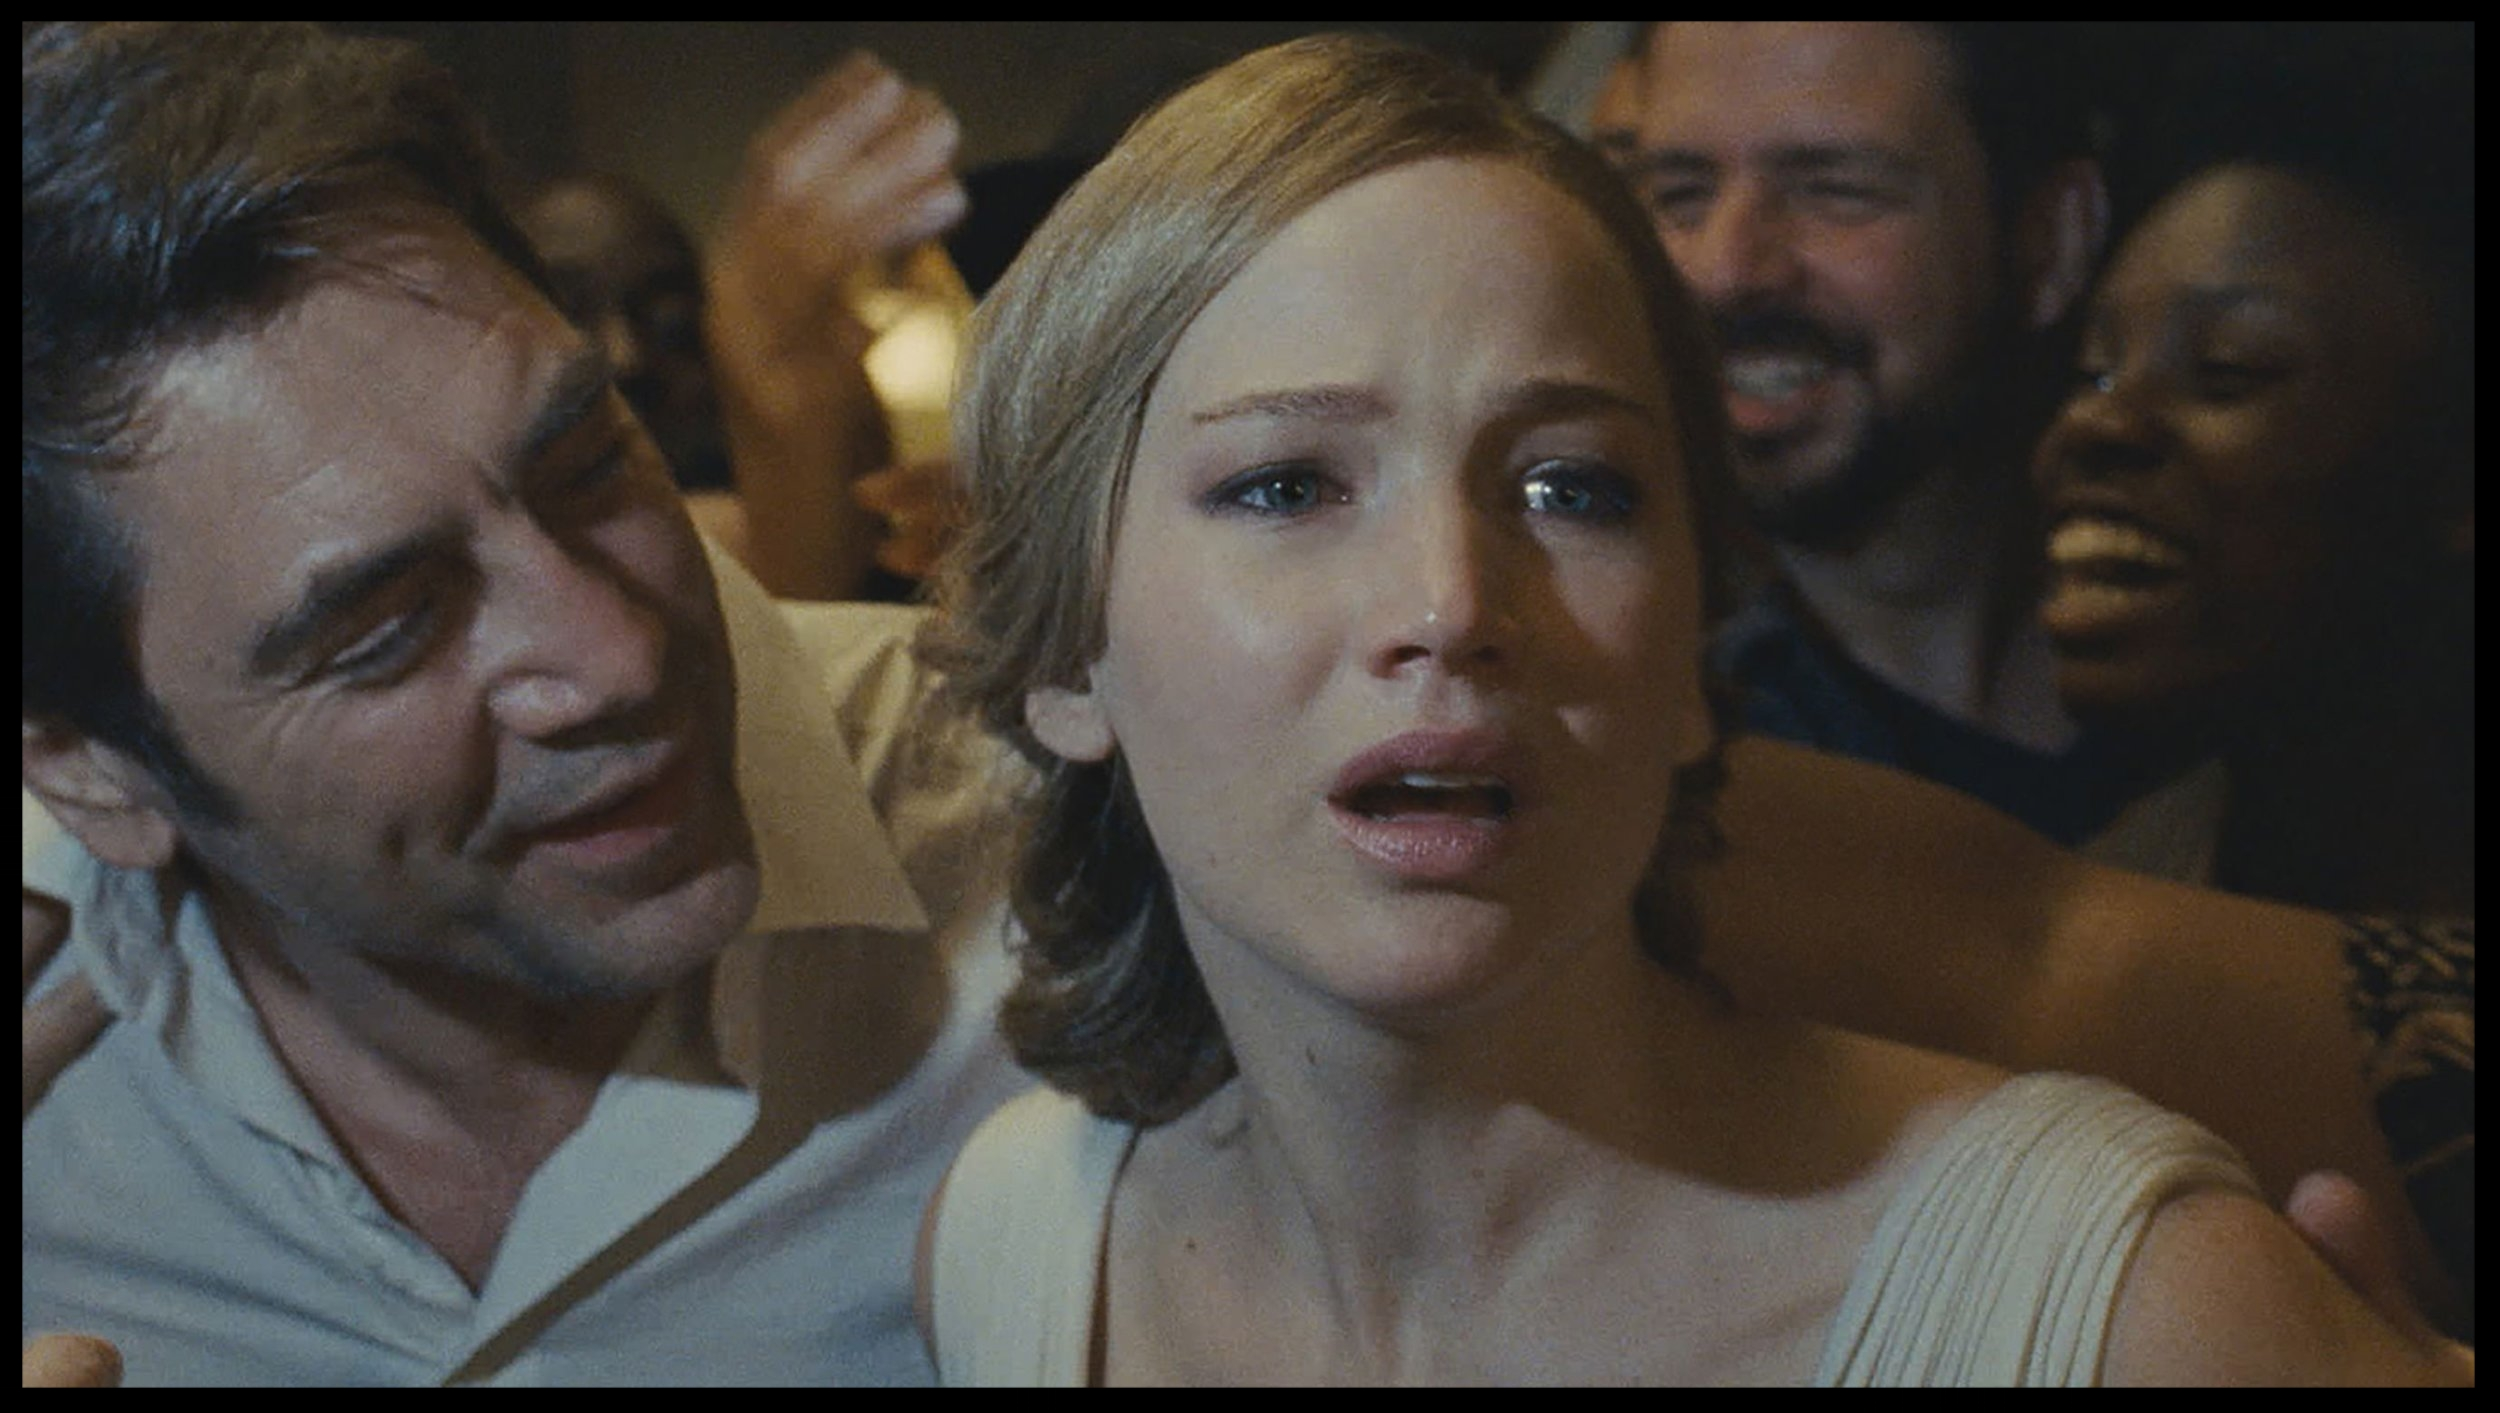 We all feel that way at a party sometimes  Jennifer